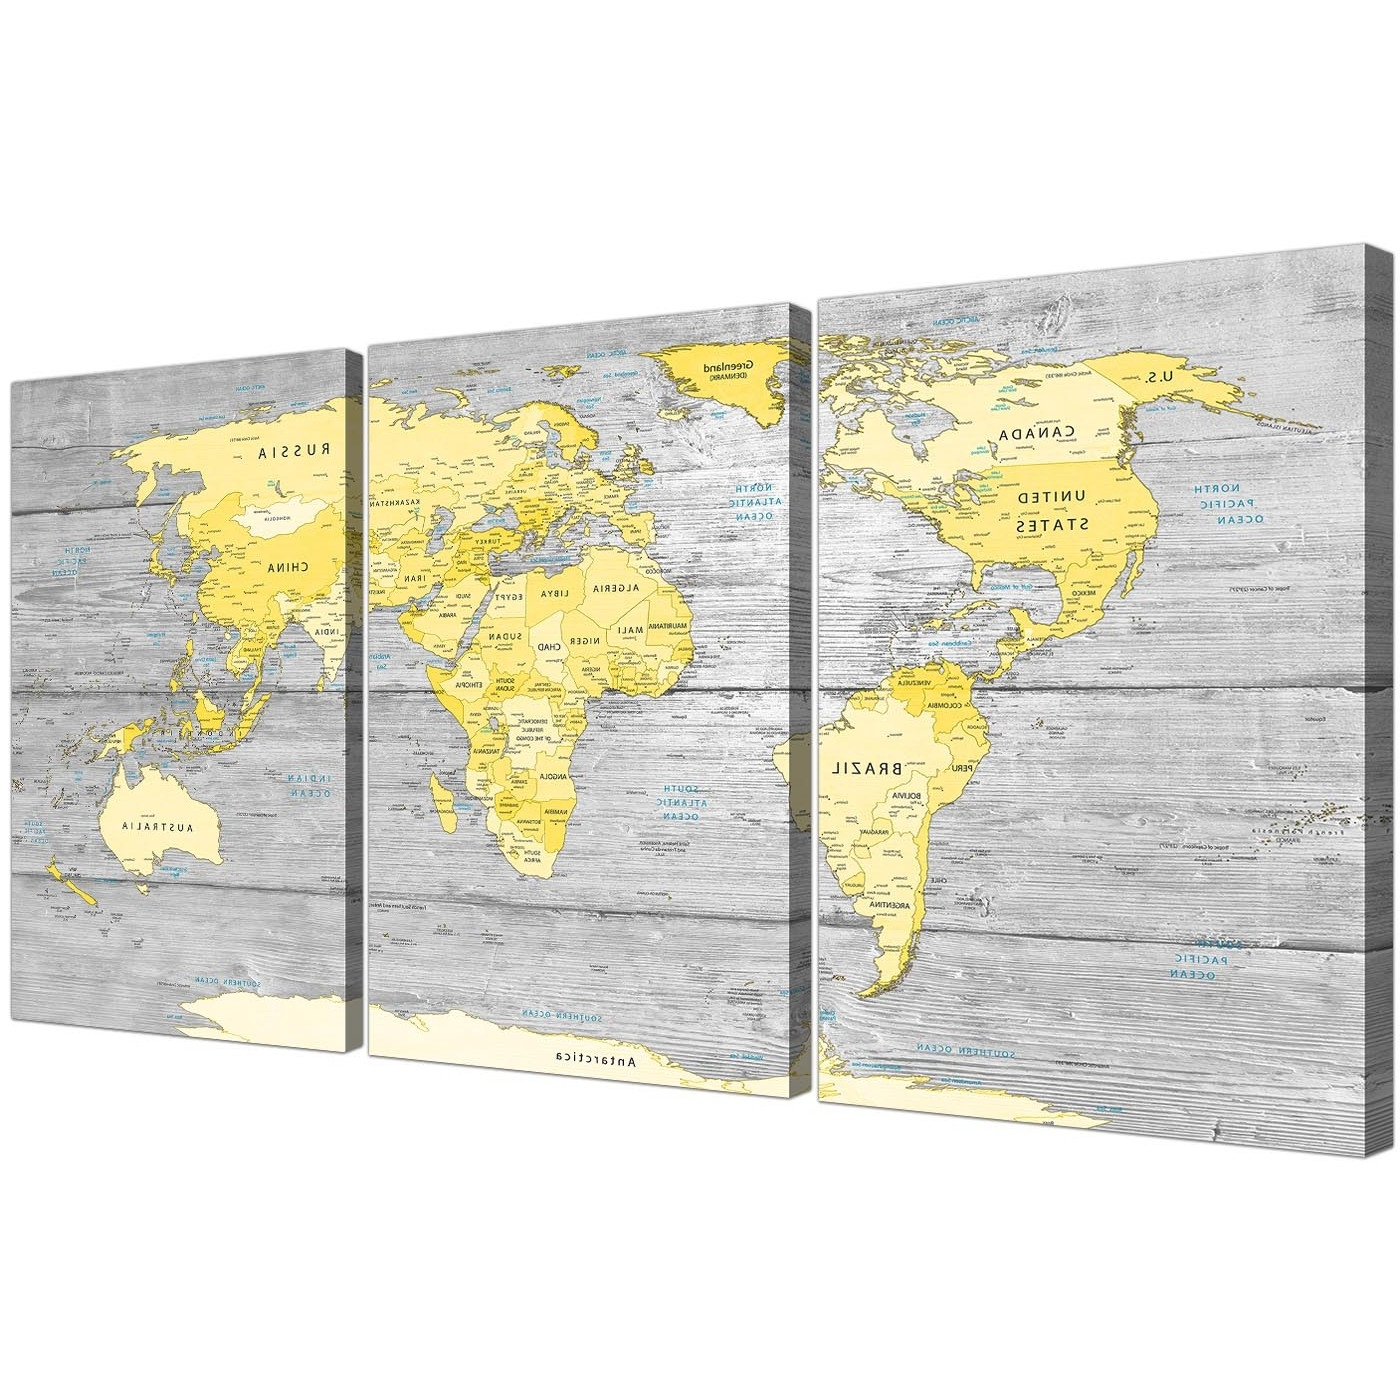 Fashionable Large Yellow Grey Map Of World Atlas Canvas Wall Art Print For Map Wall Art Prints (View 6 of 20)